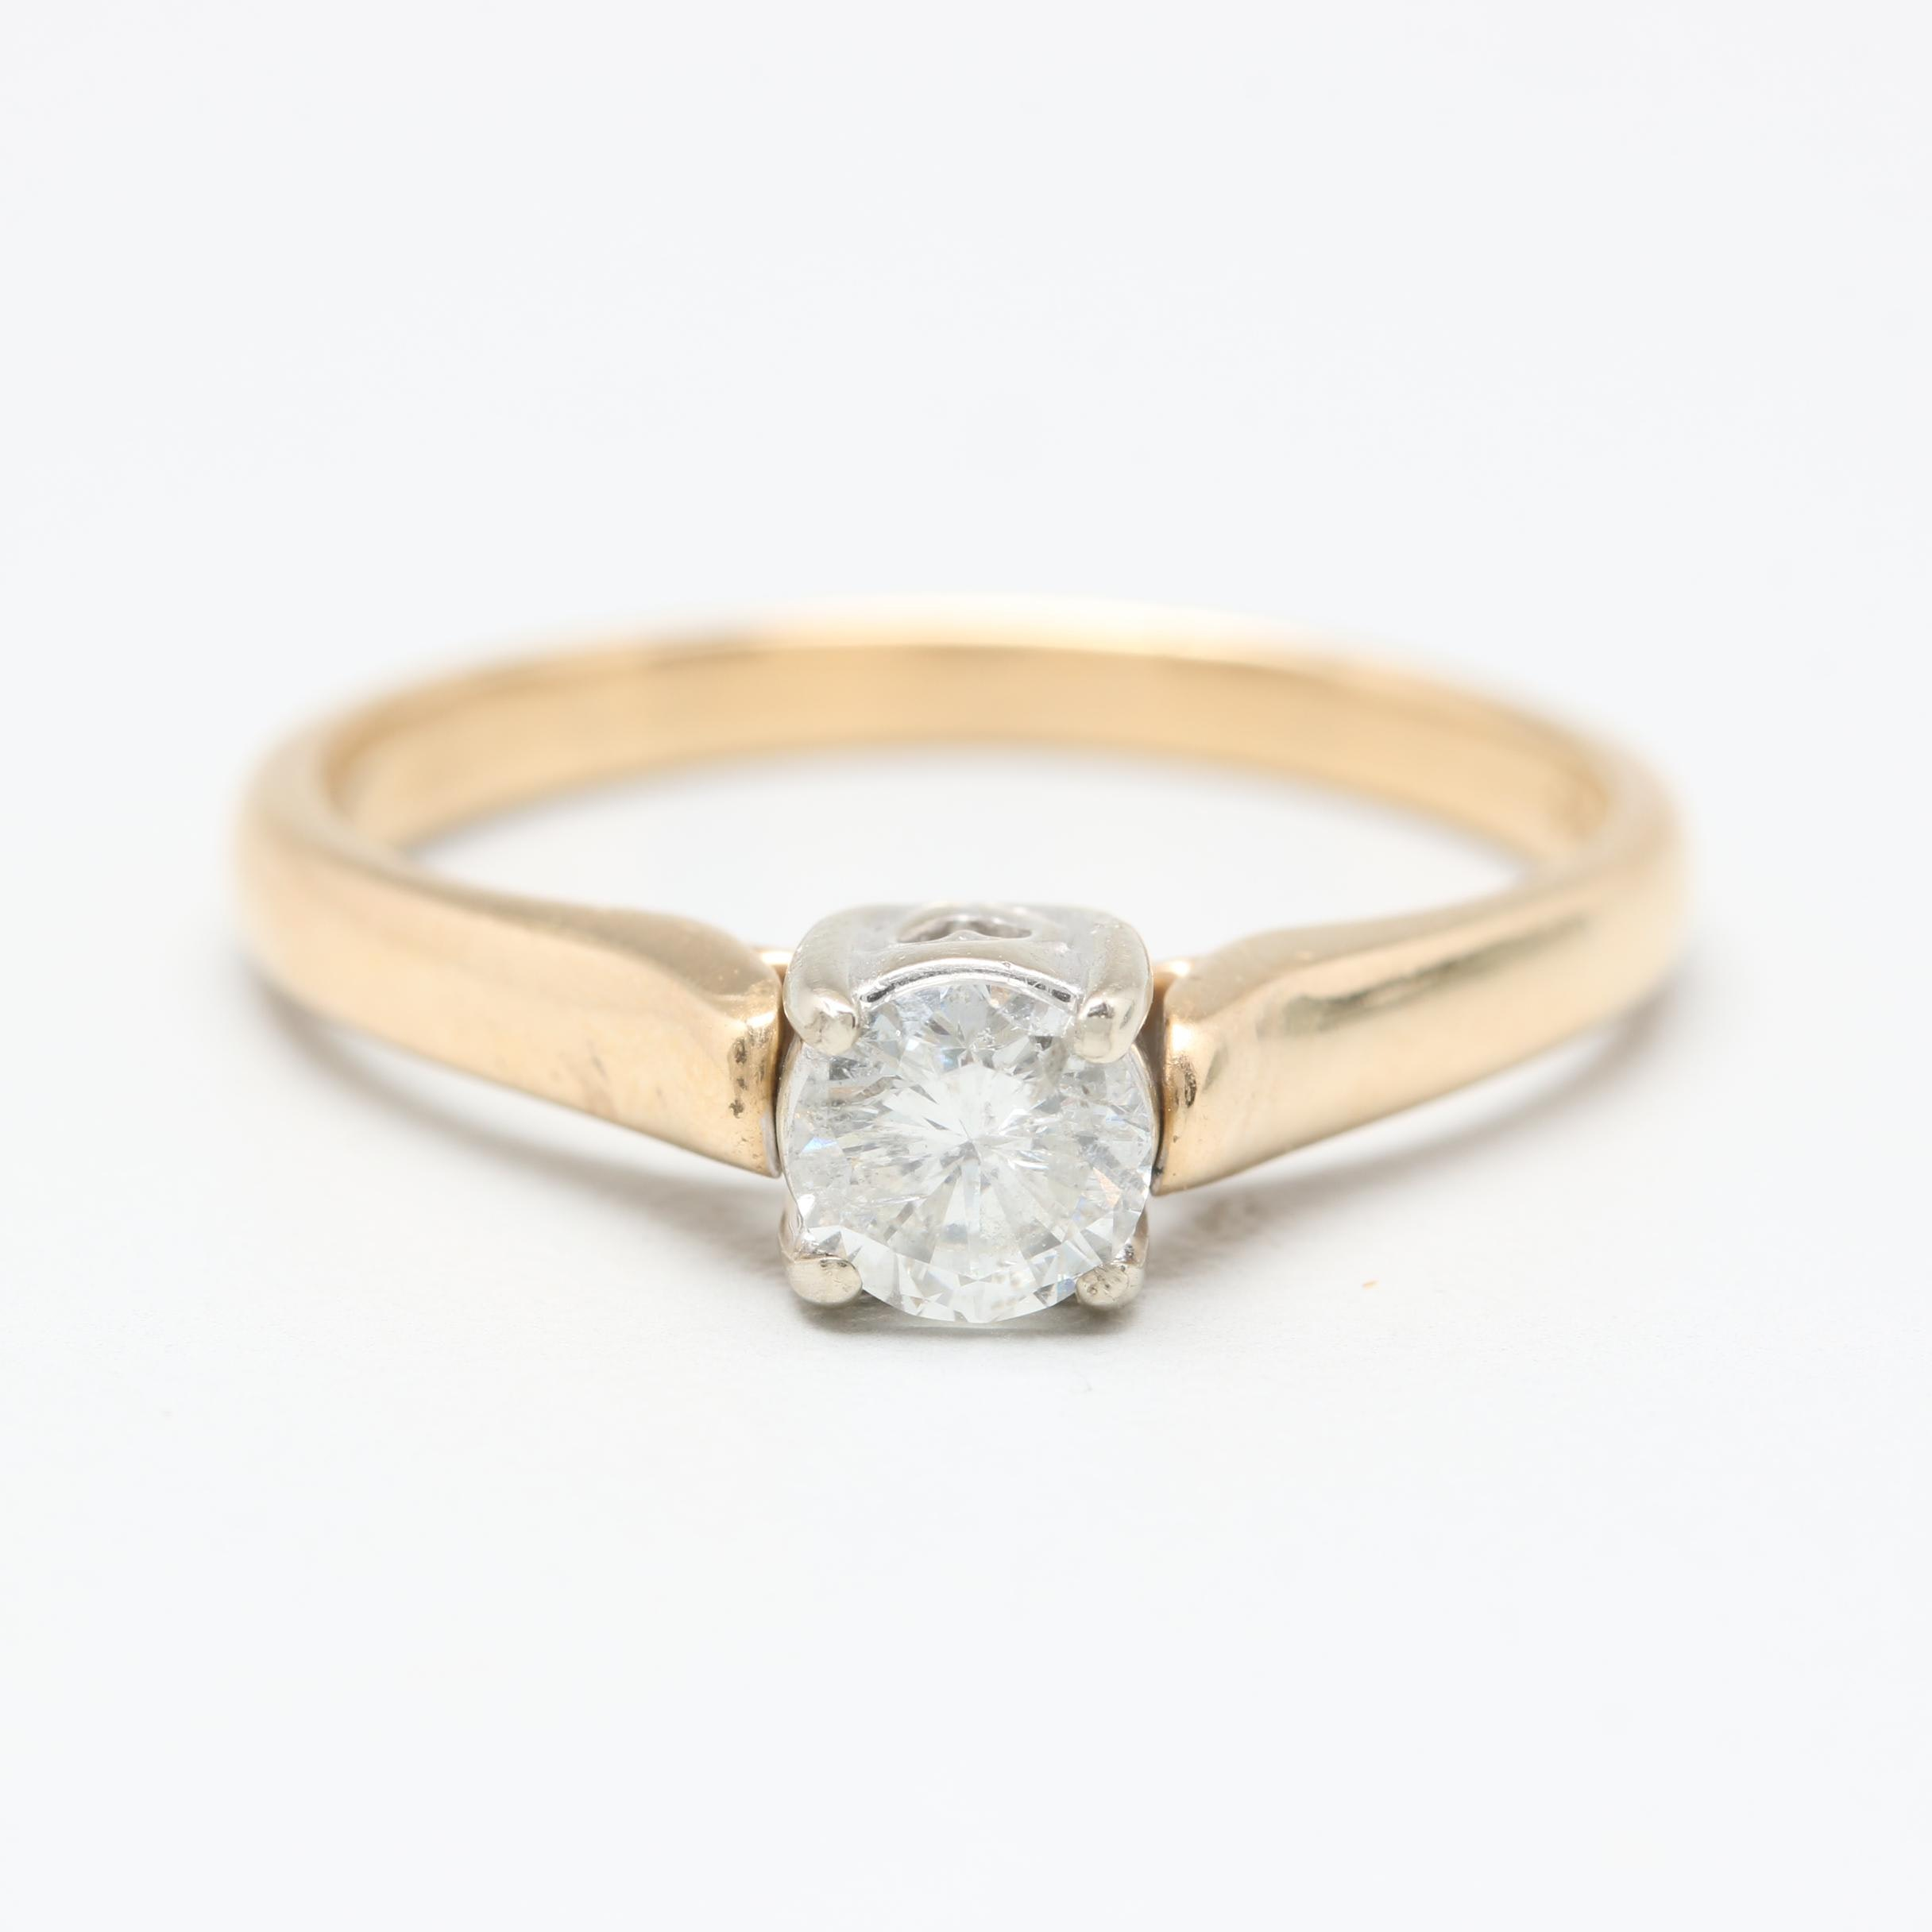 14K Yellow Gold Diamond Solitaire Ring with White Gold Accent